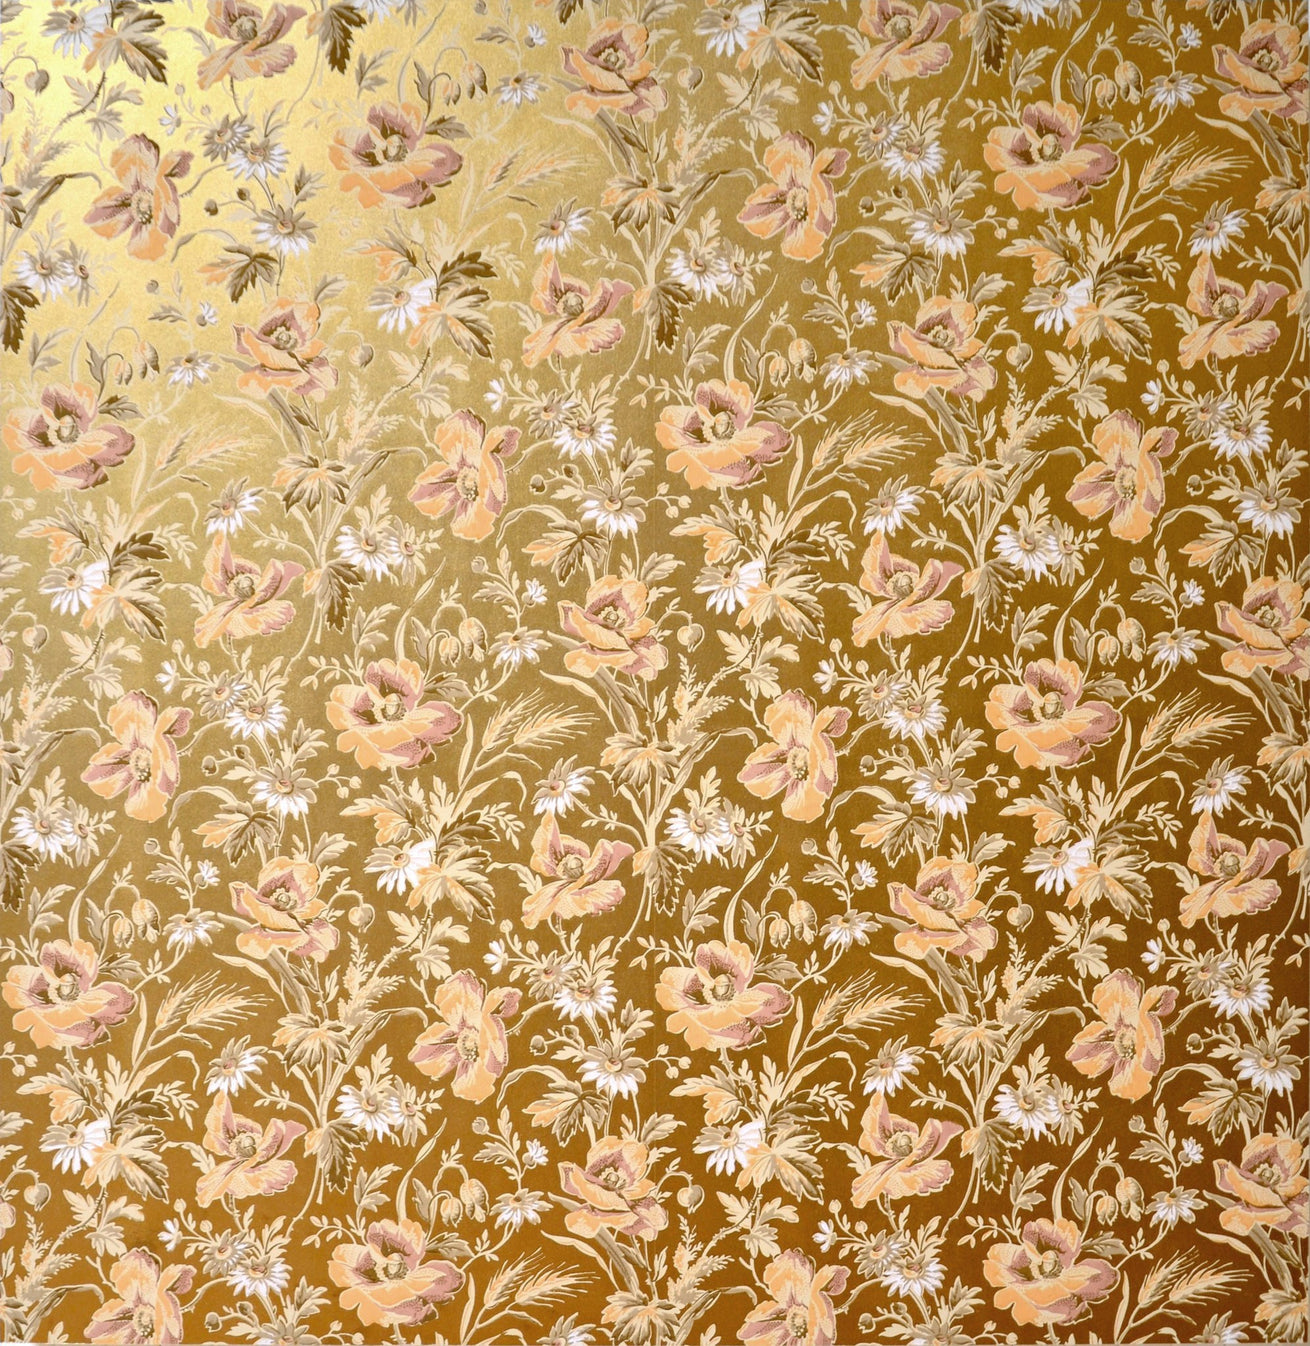 Gilt Sidewall with Wheat & Wildflowers-Custom Mounted Antique Wallpaper Art